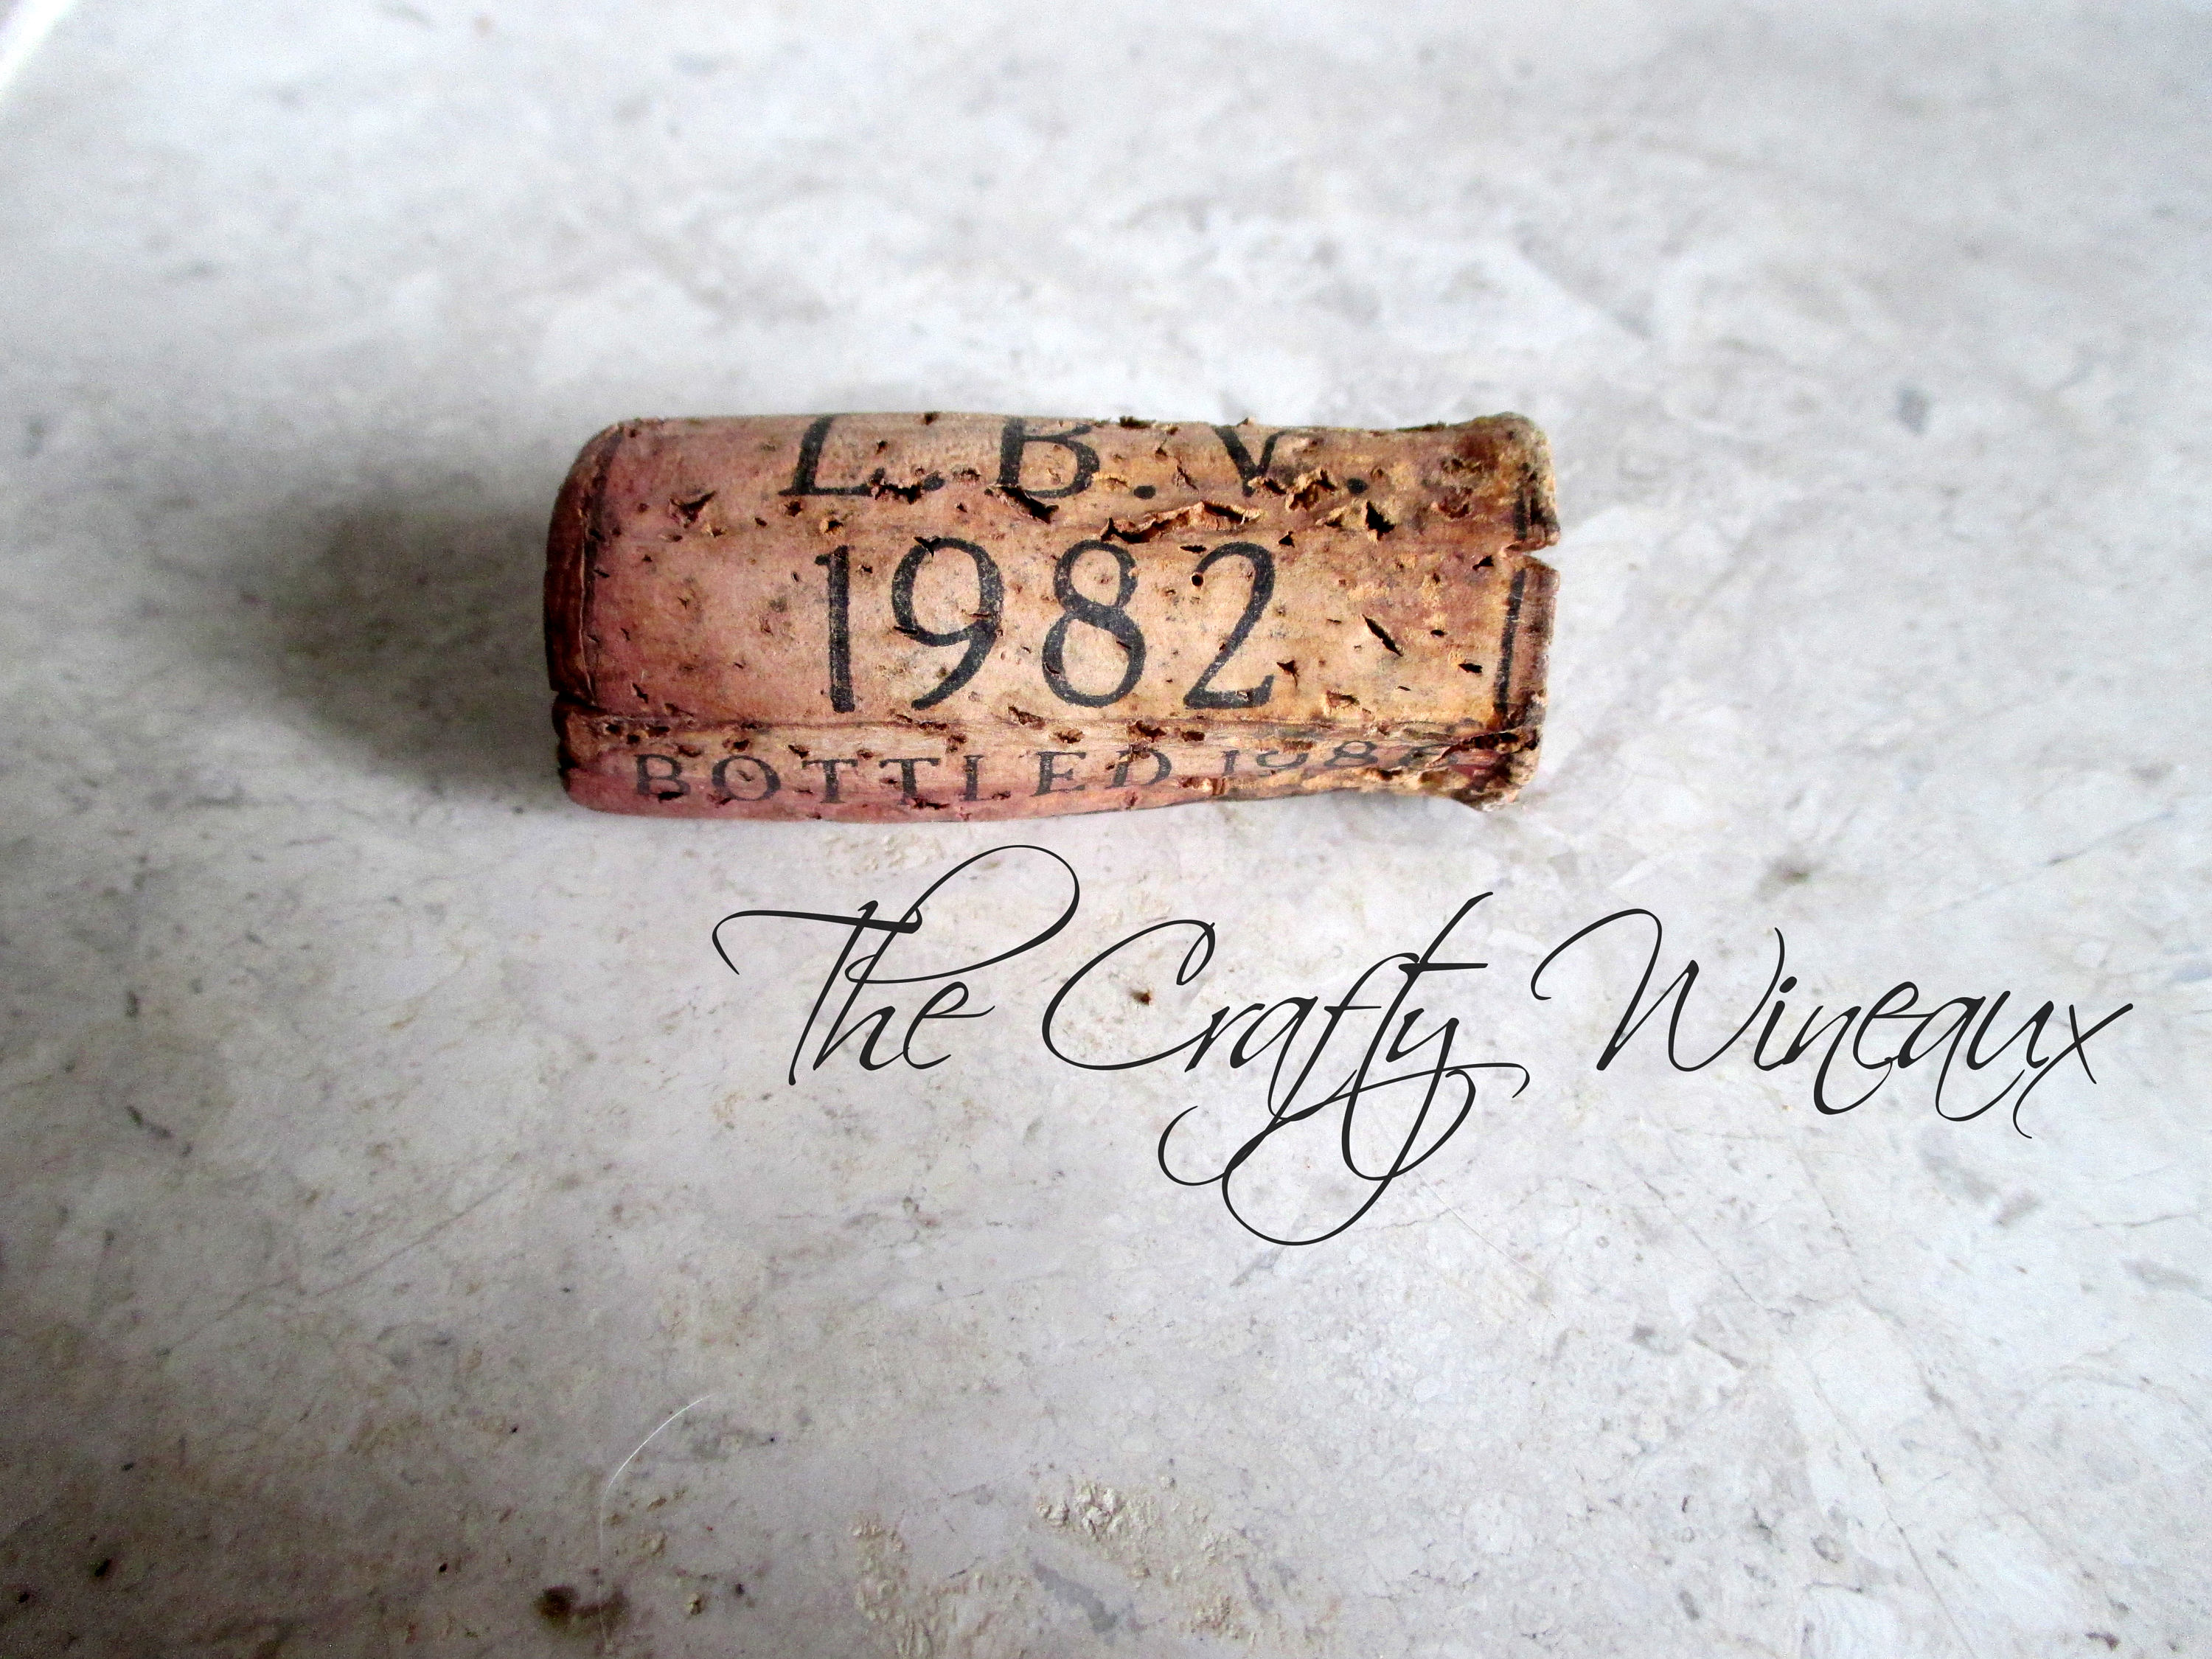 used wine cork Archives - The Crafty Wineaux